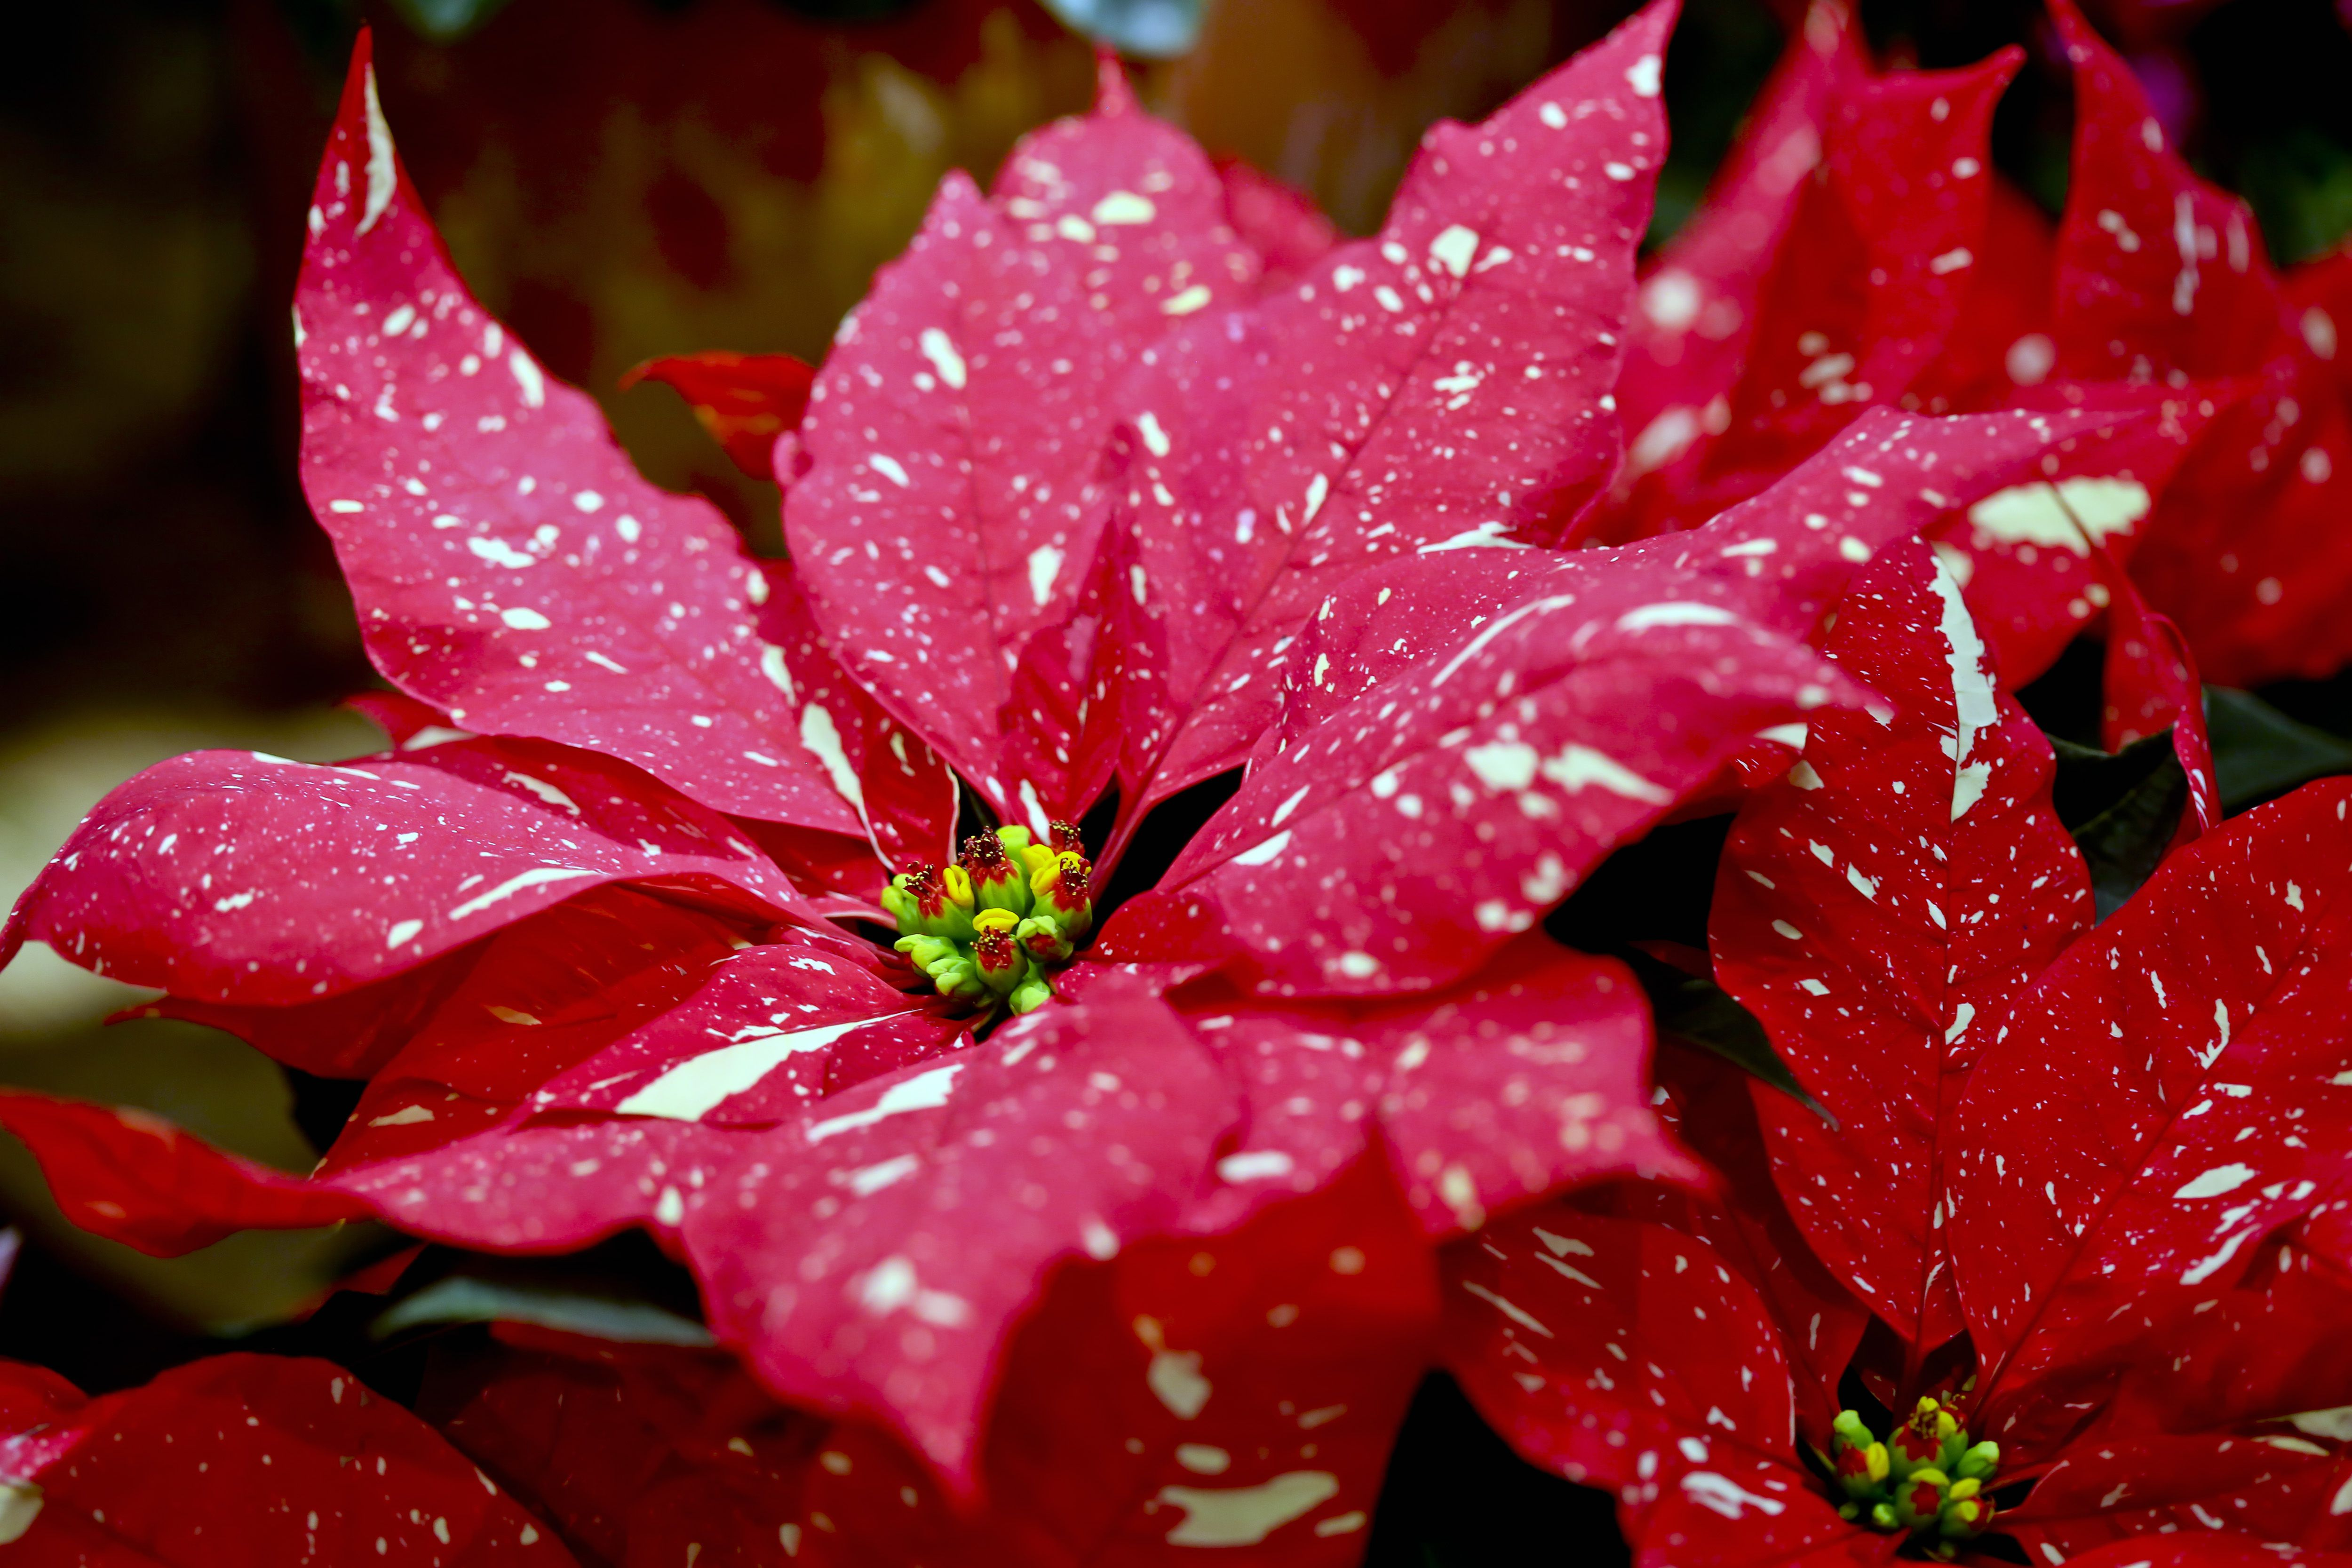 detailed view of spotted poinsettia